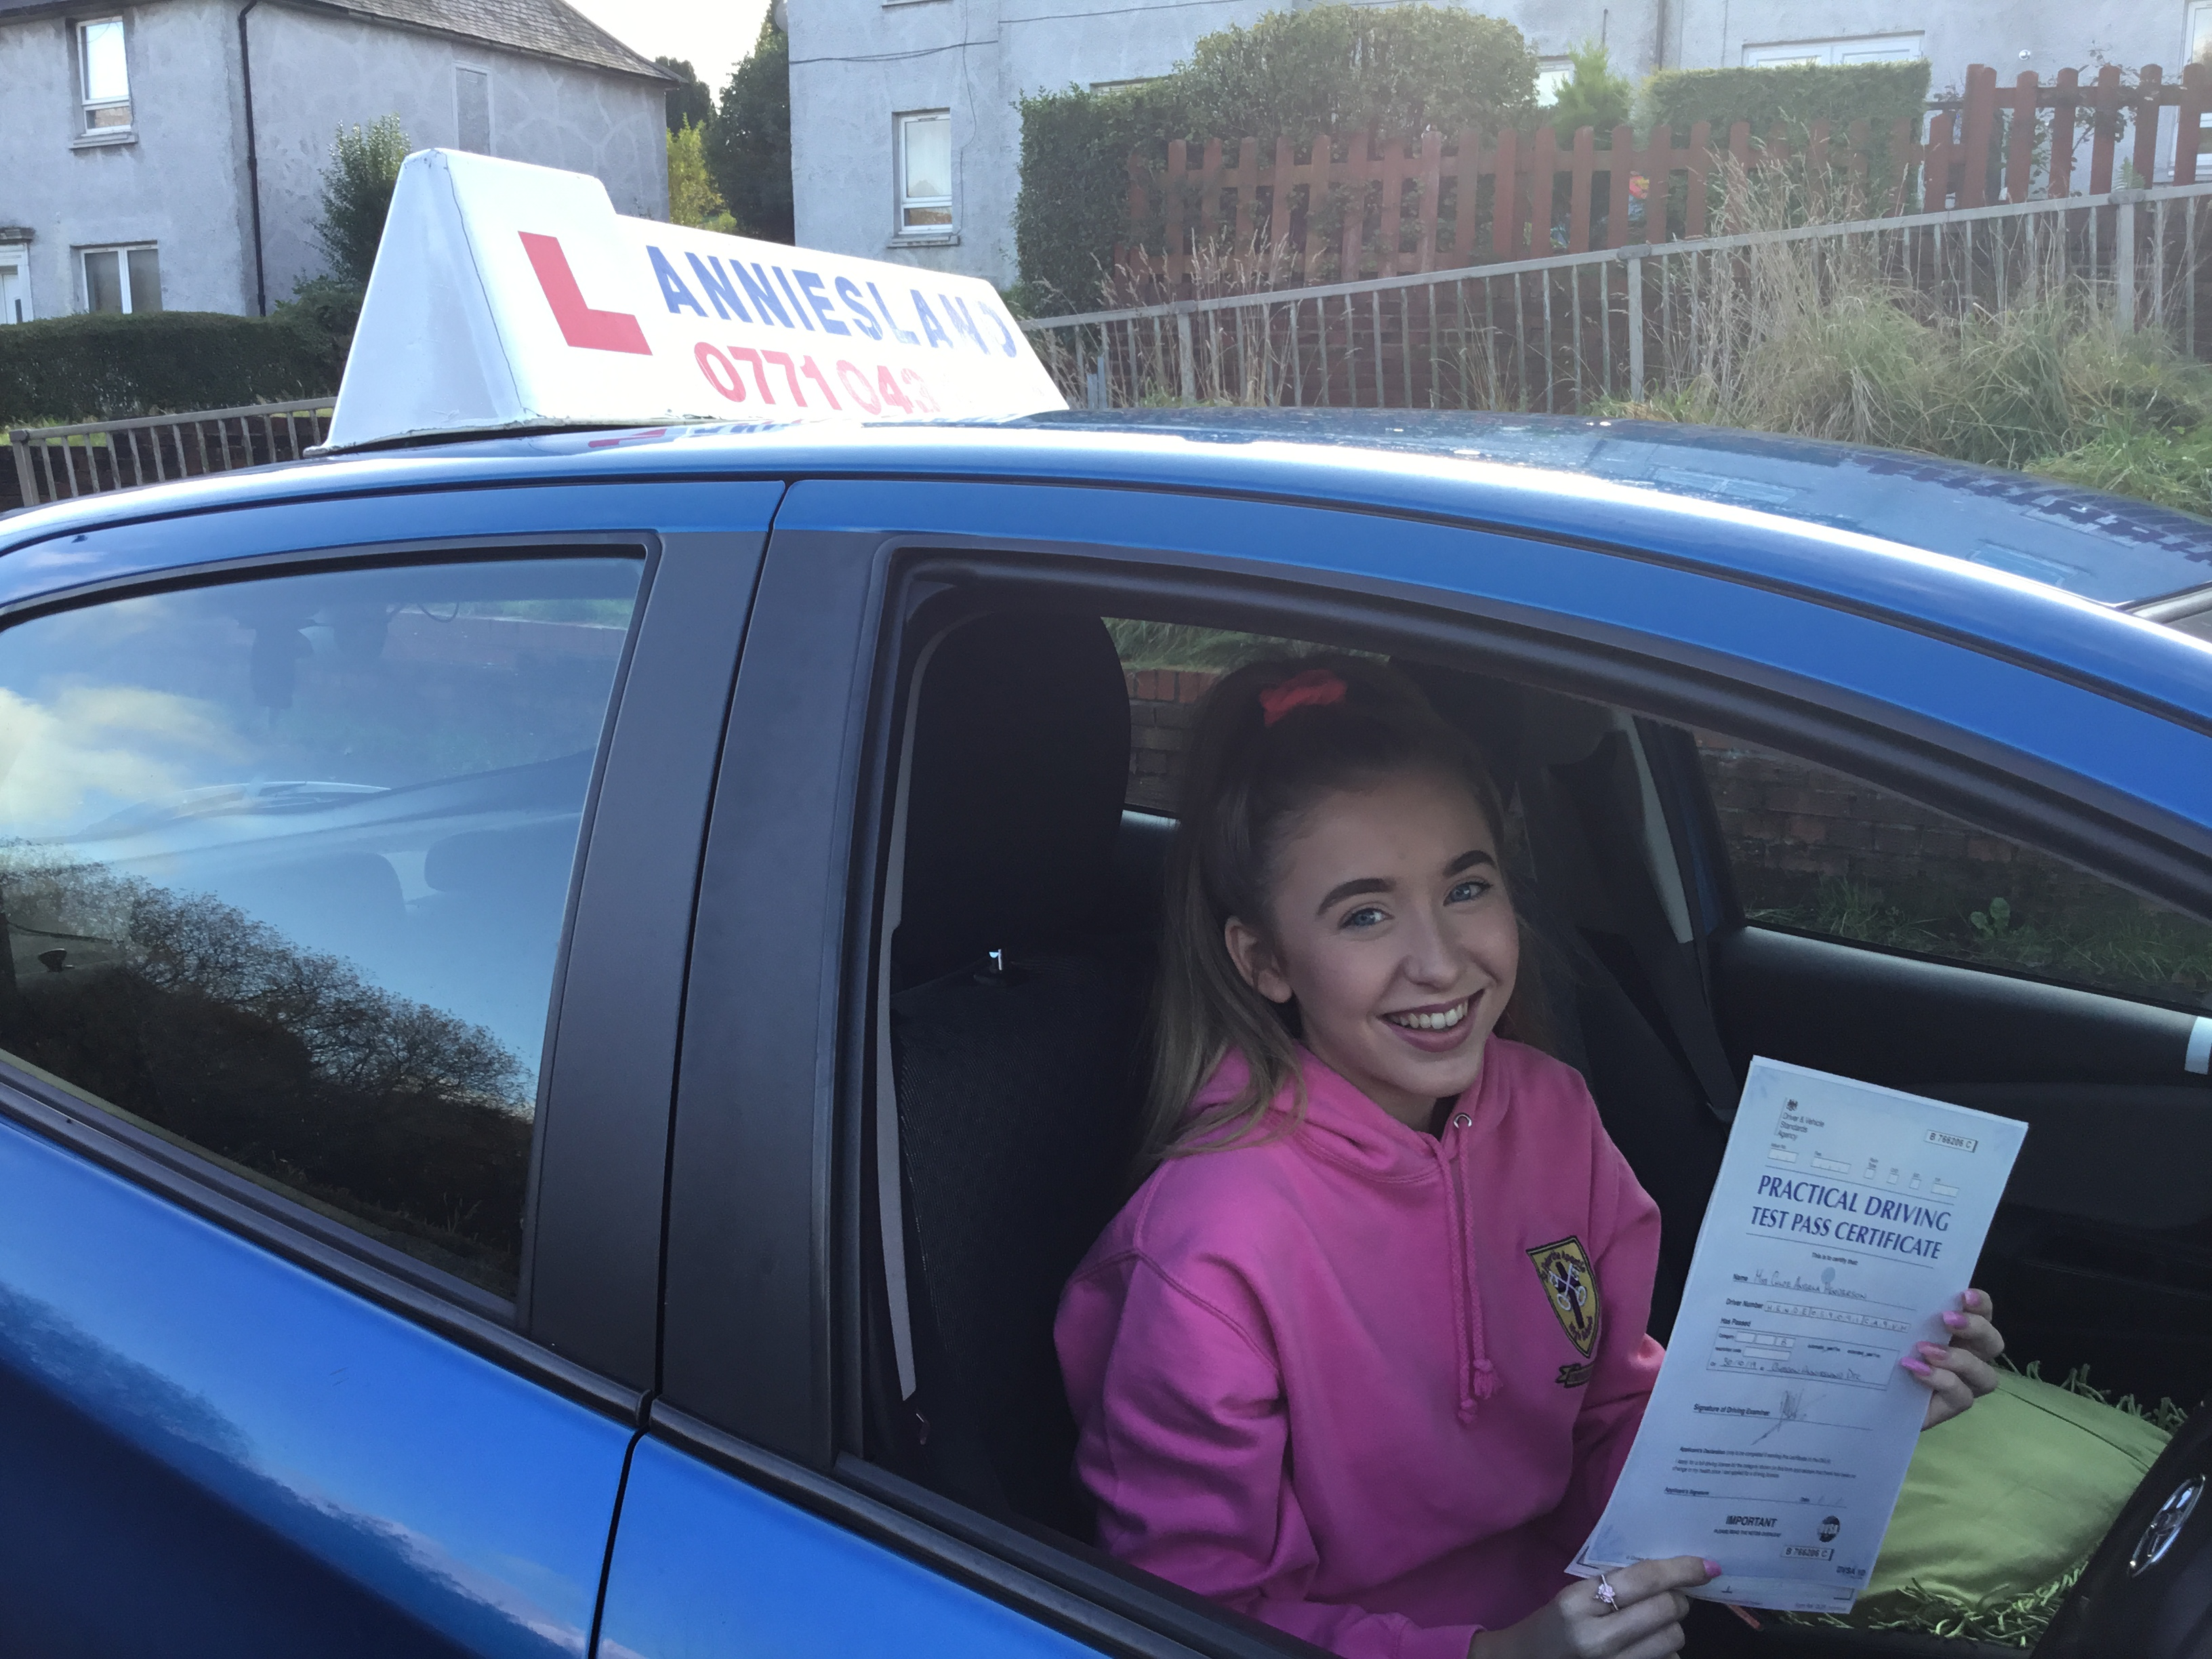 Chloe Henderson successfully passed their driving test with Anniesland Driving School